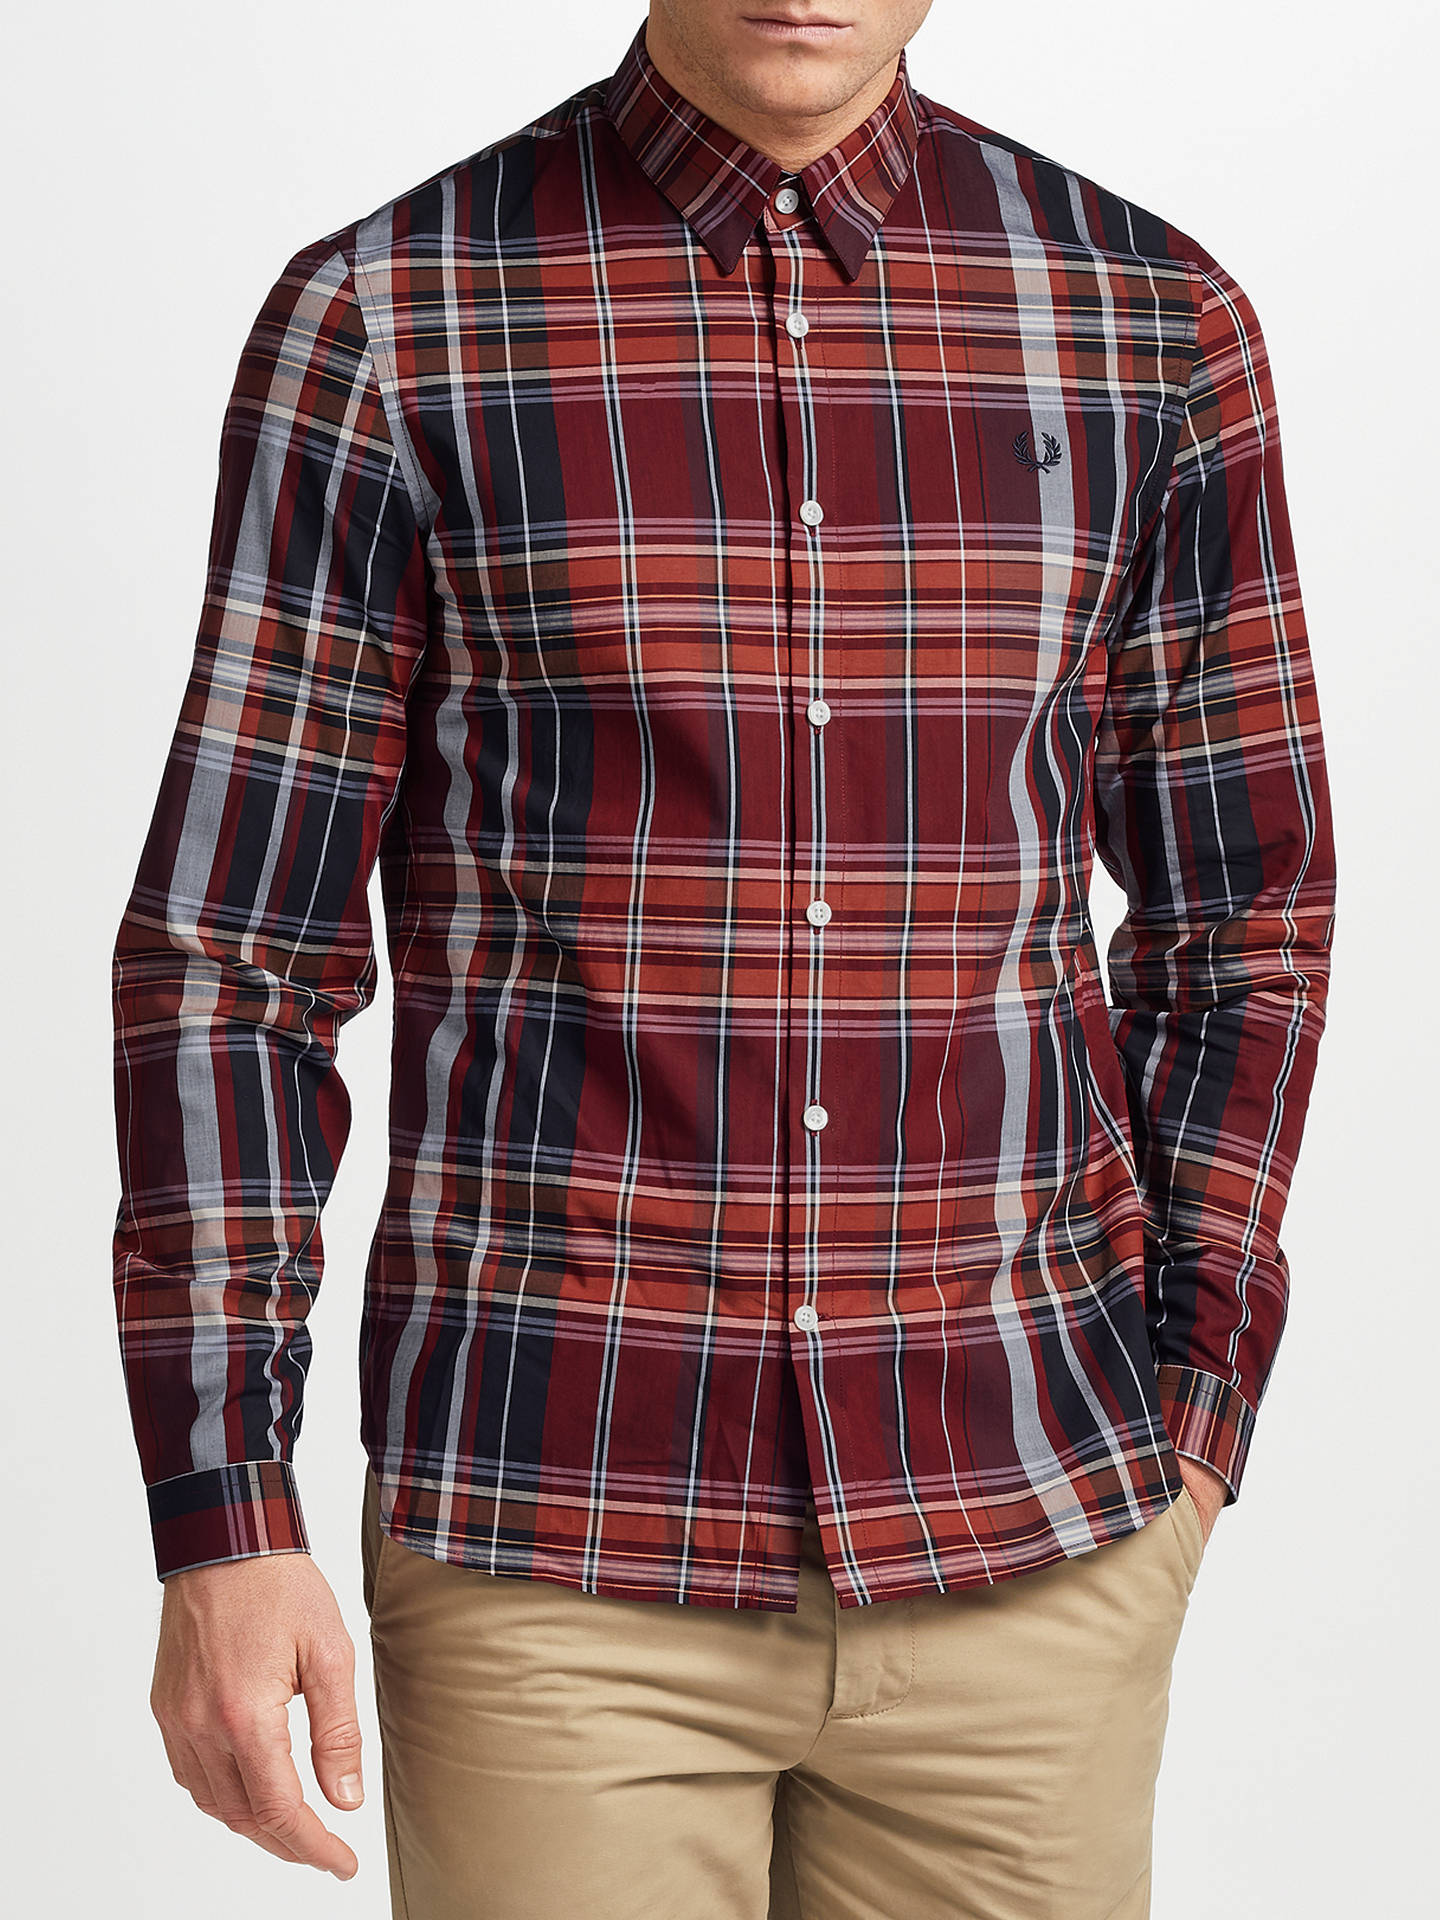 4ed3ac8a Buy Fred Perry Enlarged Tartan Long Sleeve Shirt, Red, S Online at  johnlewis.